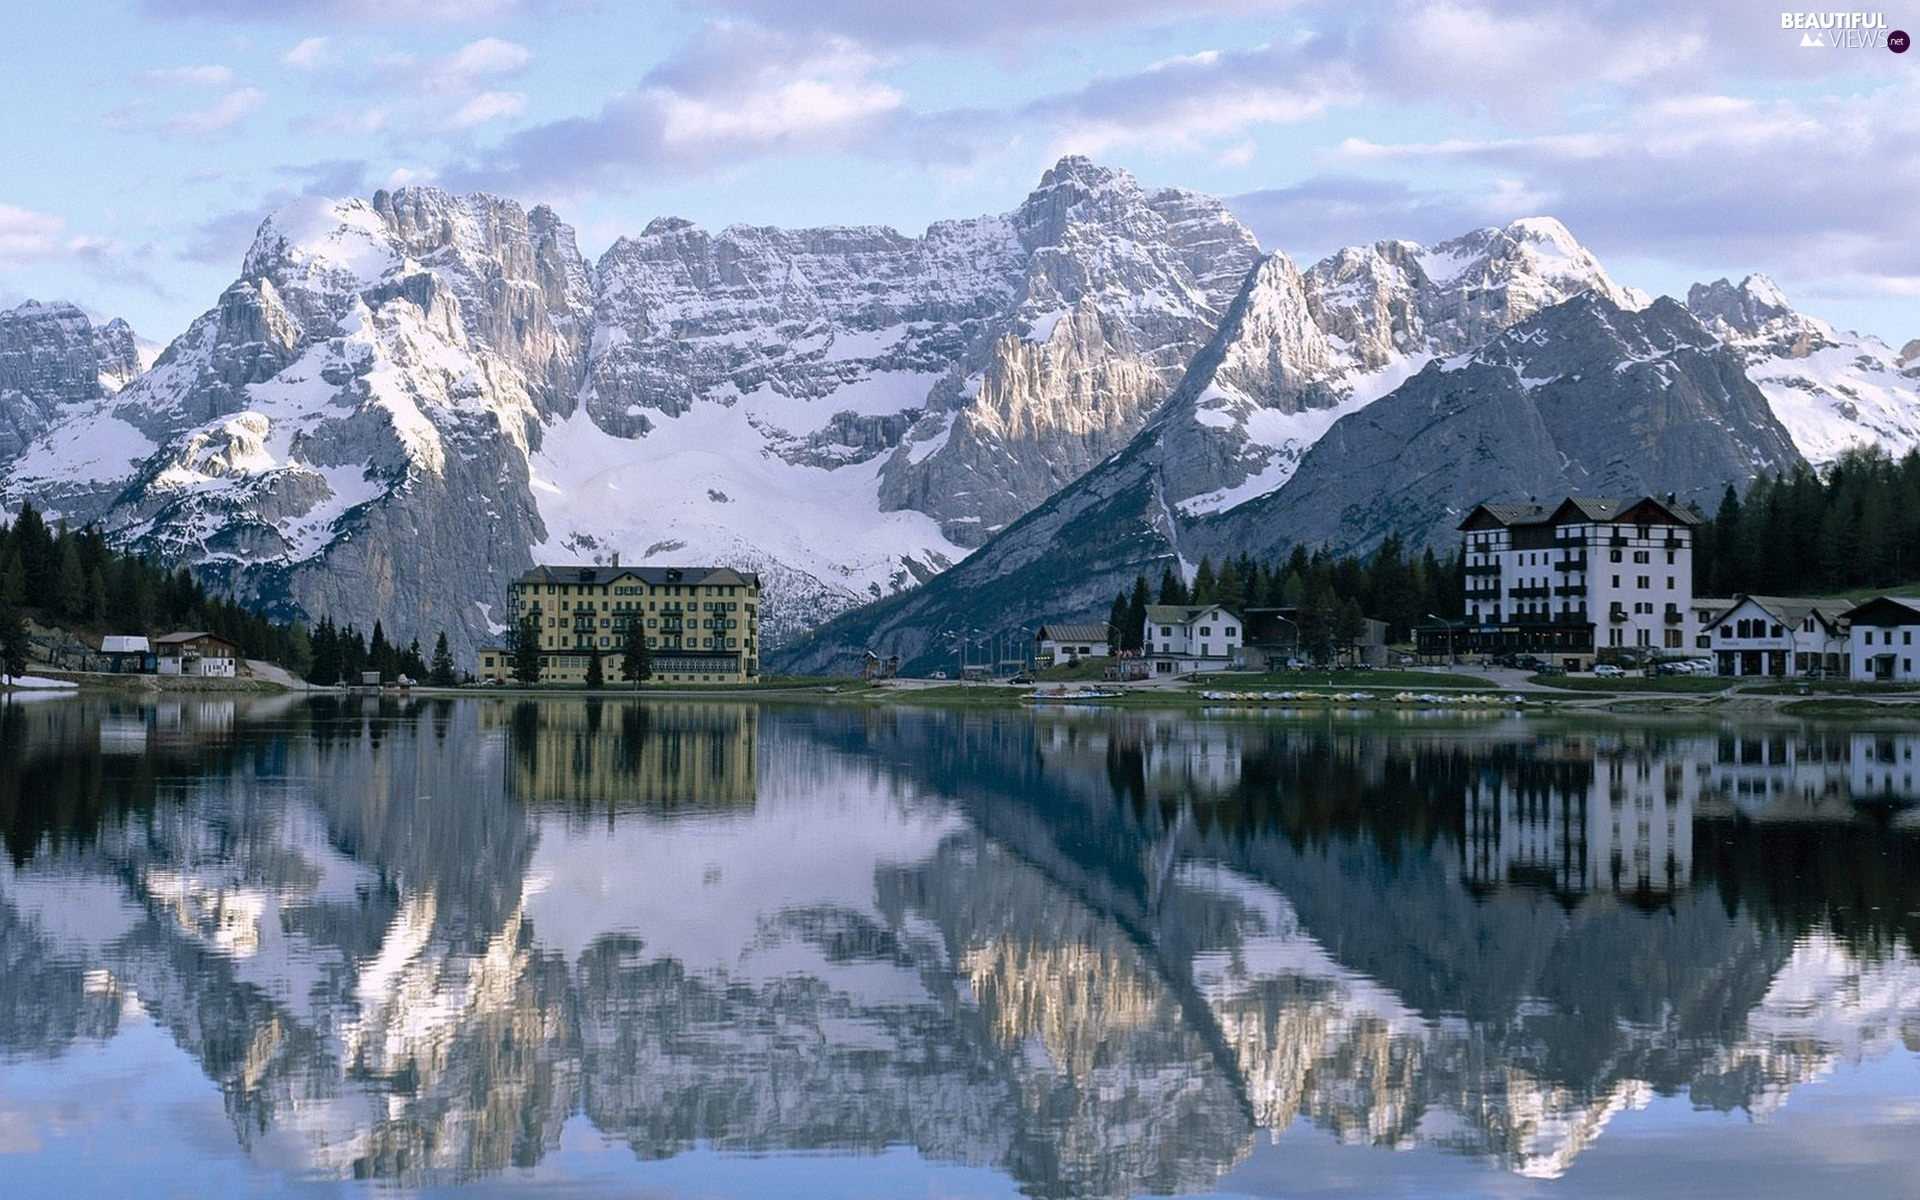 Mountains, buildings, winter, lake